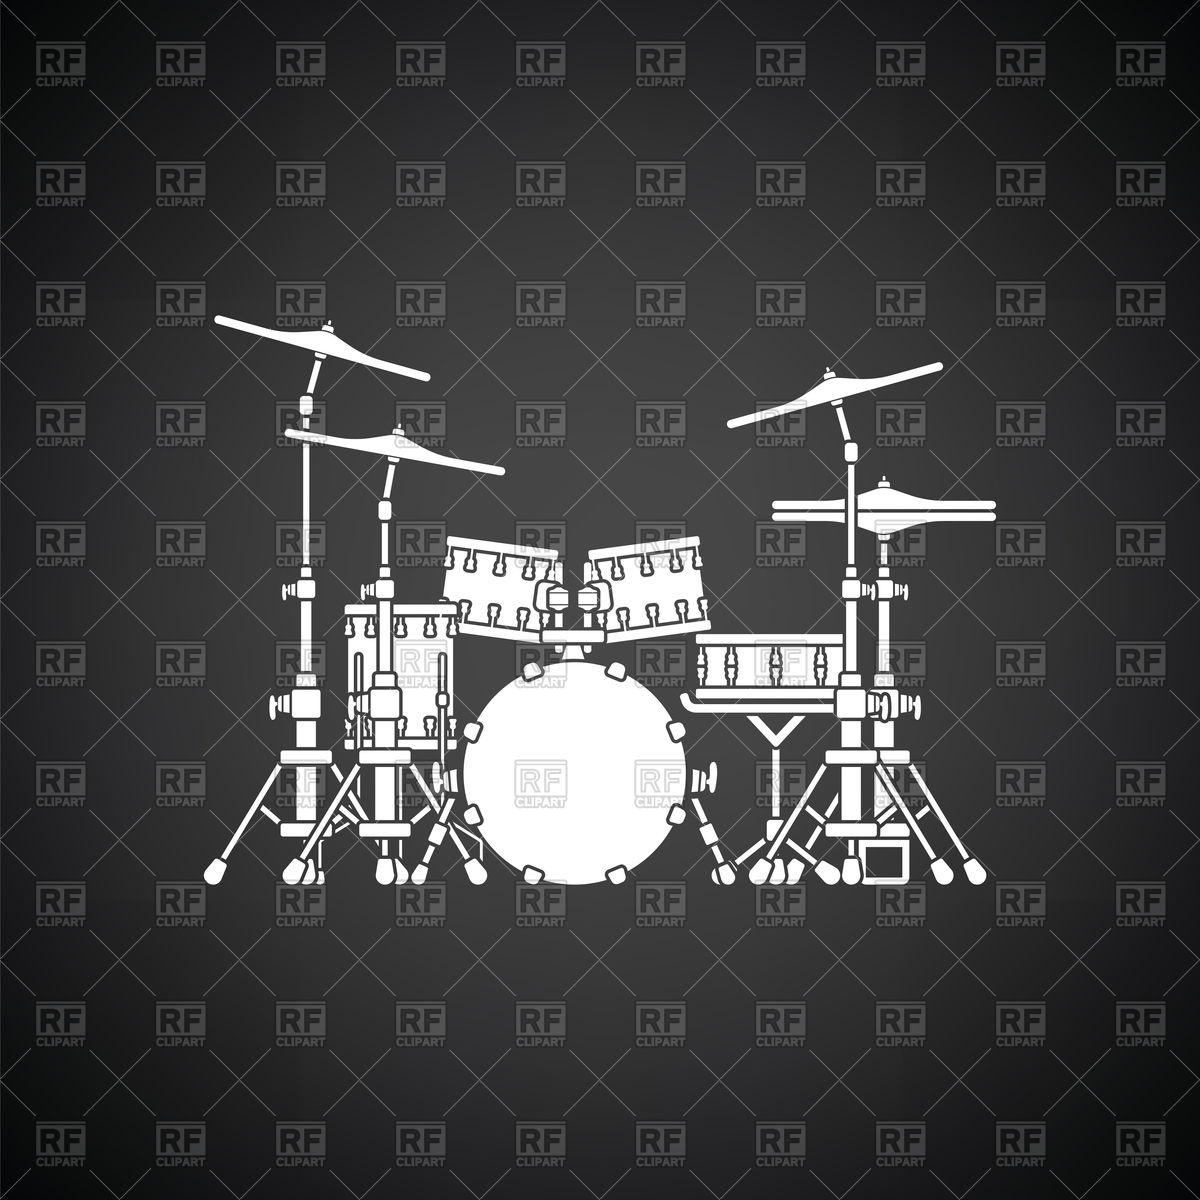 Drum set icon on black background Vector Image of Music angelp 1200x1200